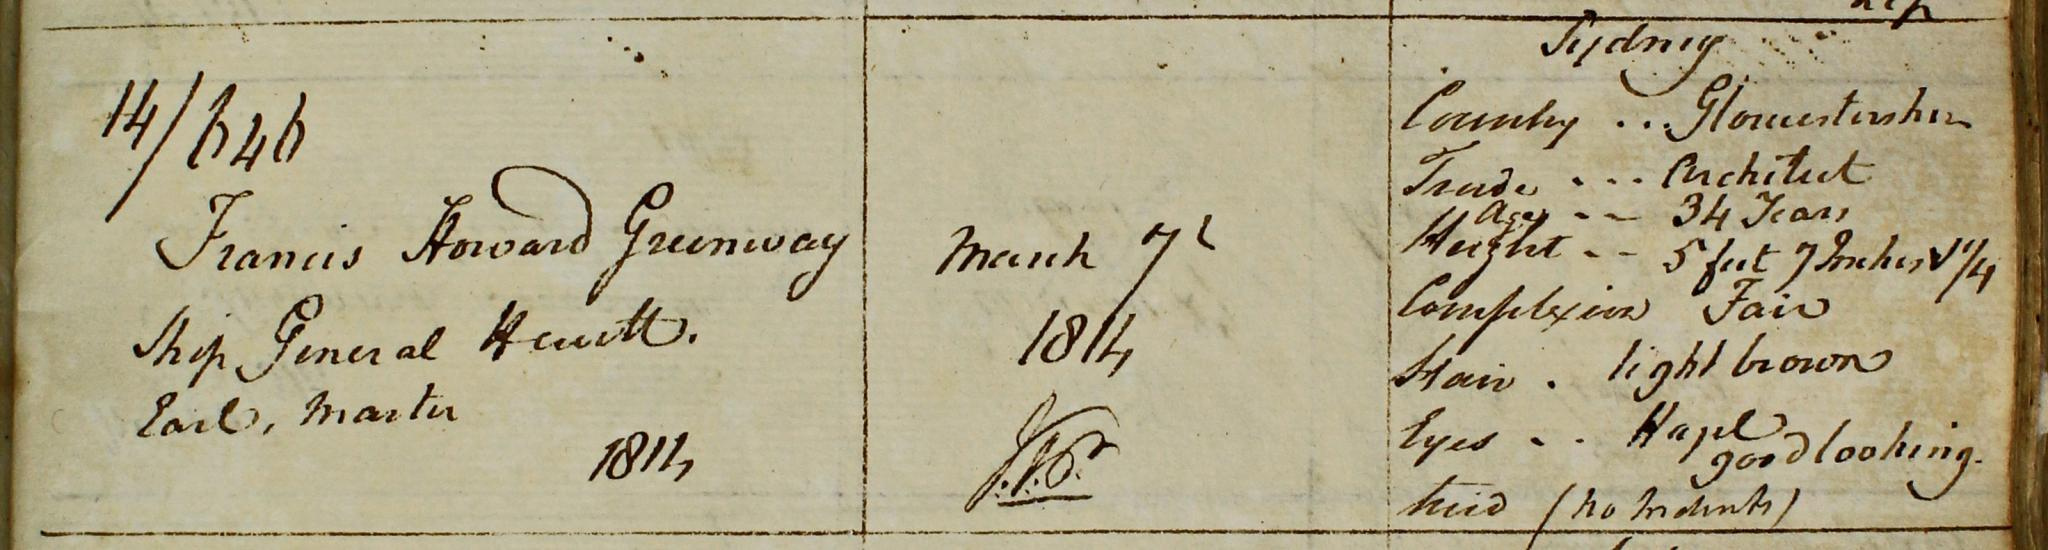 Ticket of Leave, Francis Greenway. NRS 1166 4-4427 Reel 601 p416